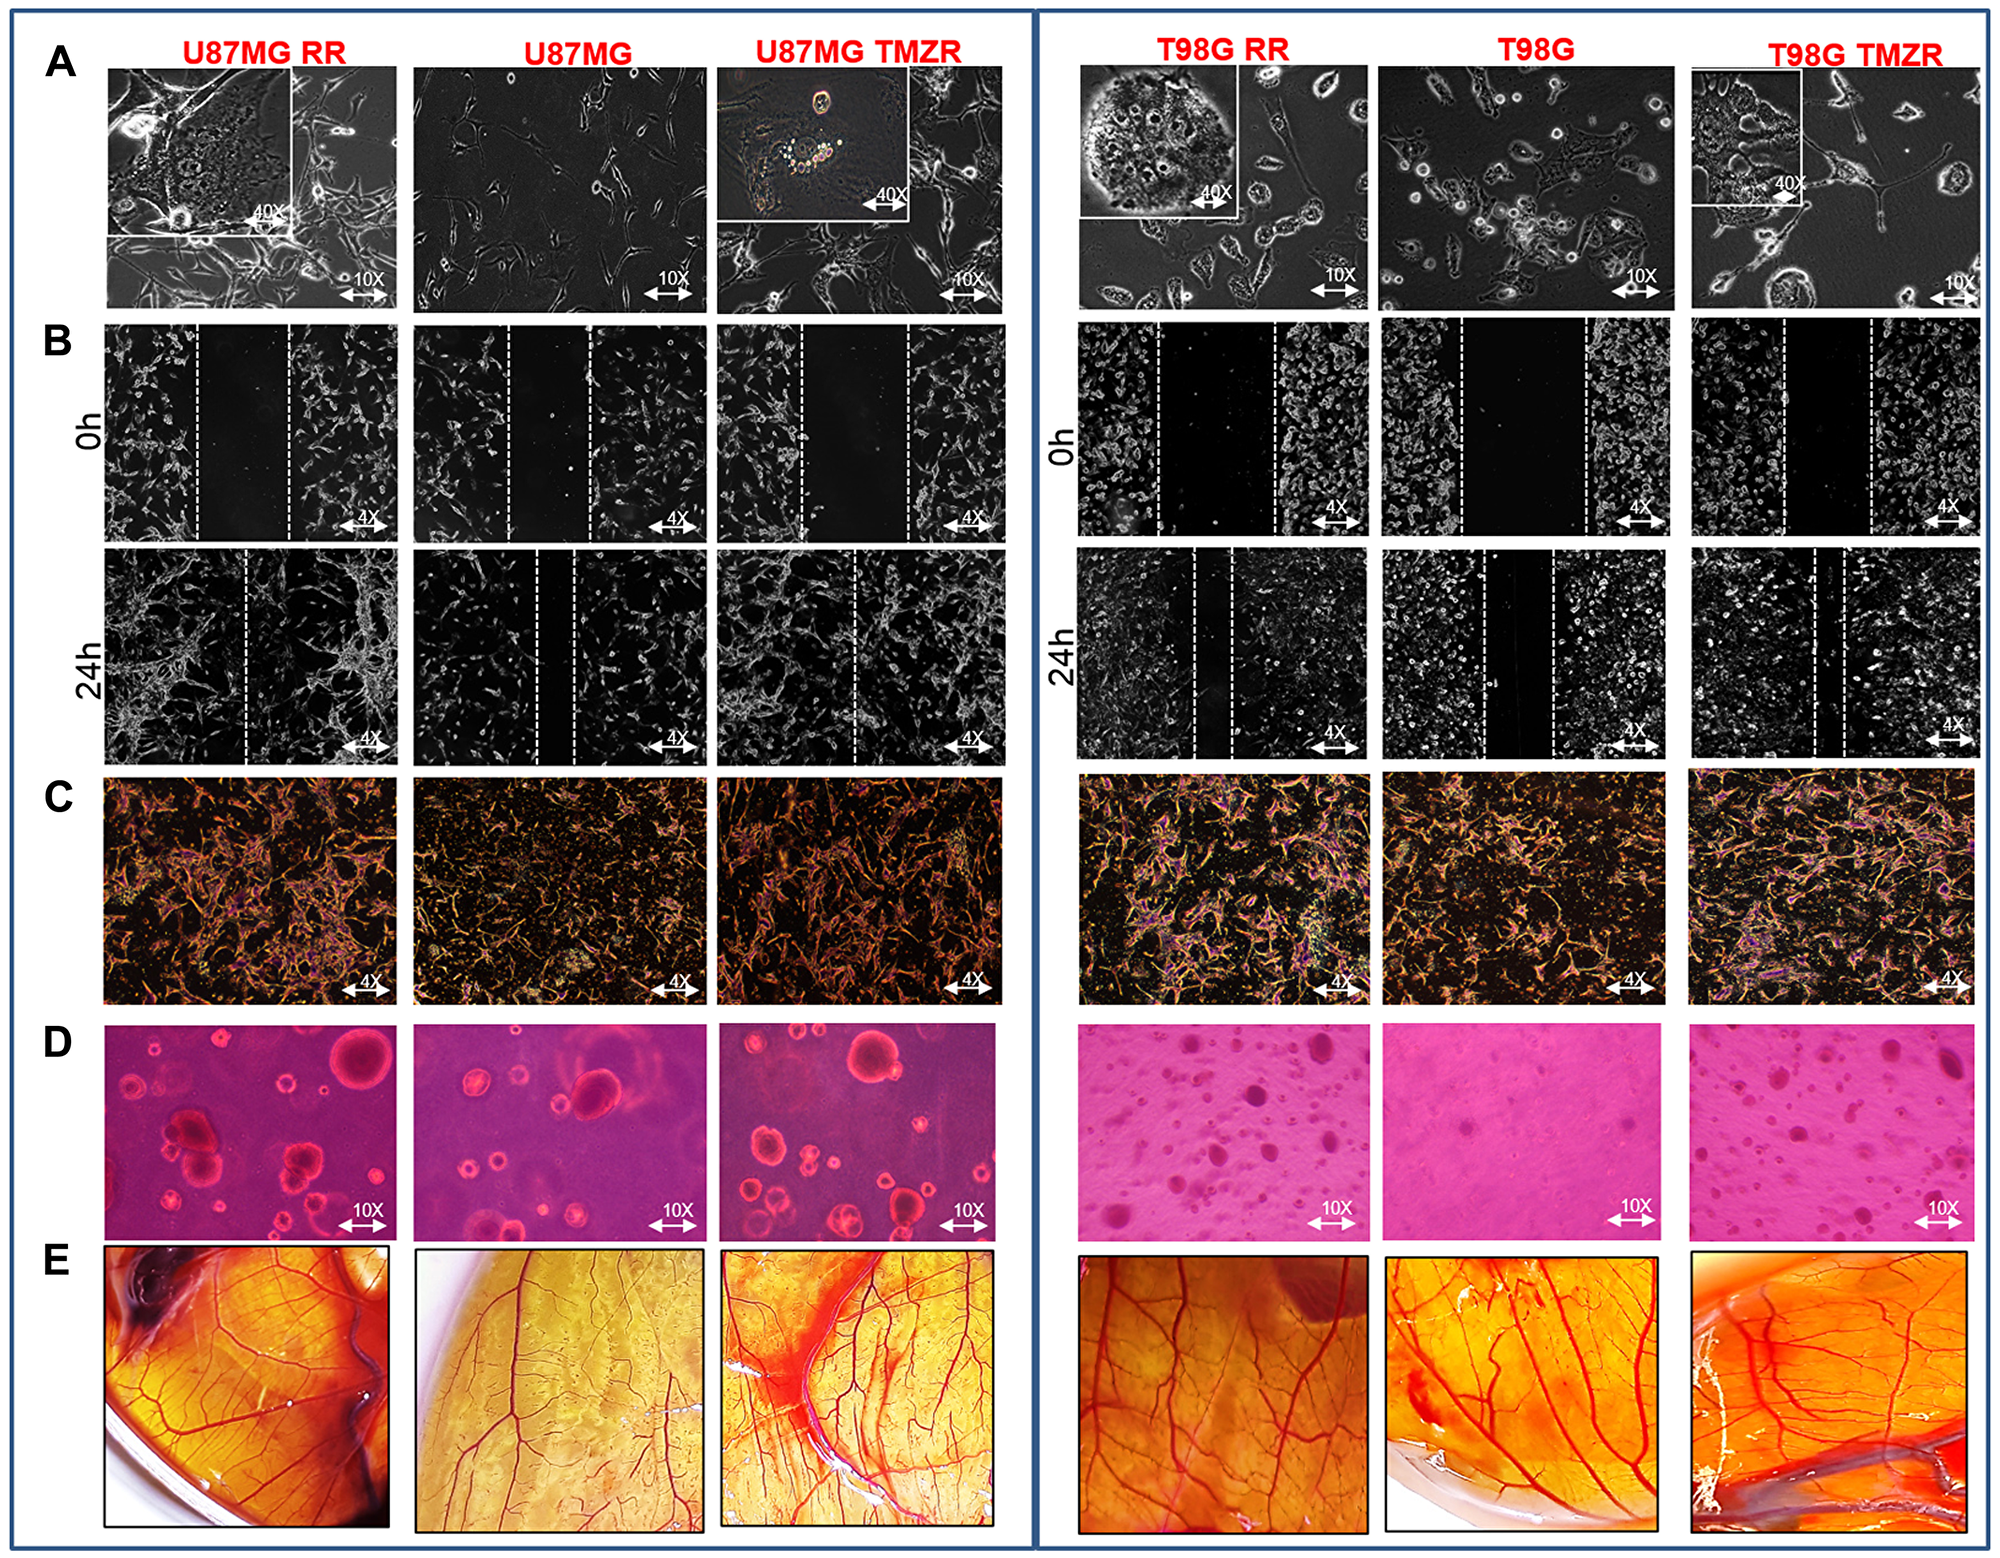 Characterization of radiation-resistant and TMZ-resistant (RR/TMZR) GBM cells.